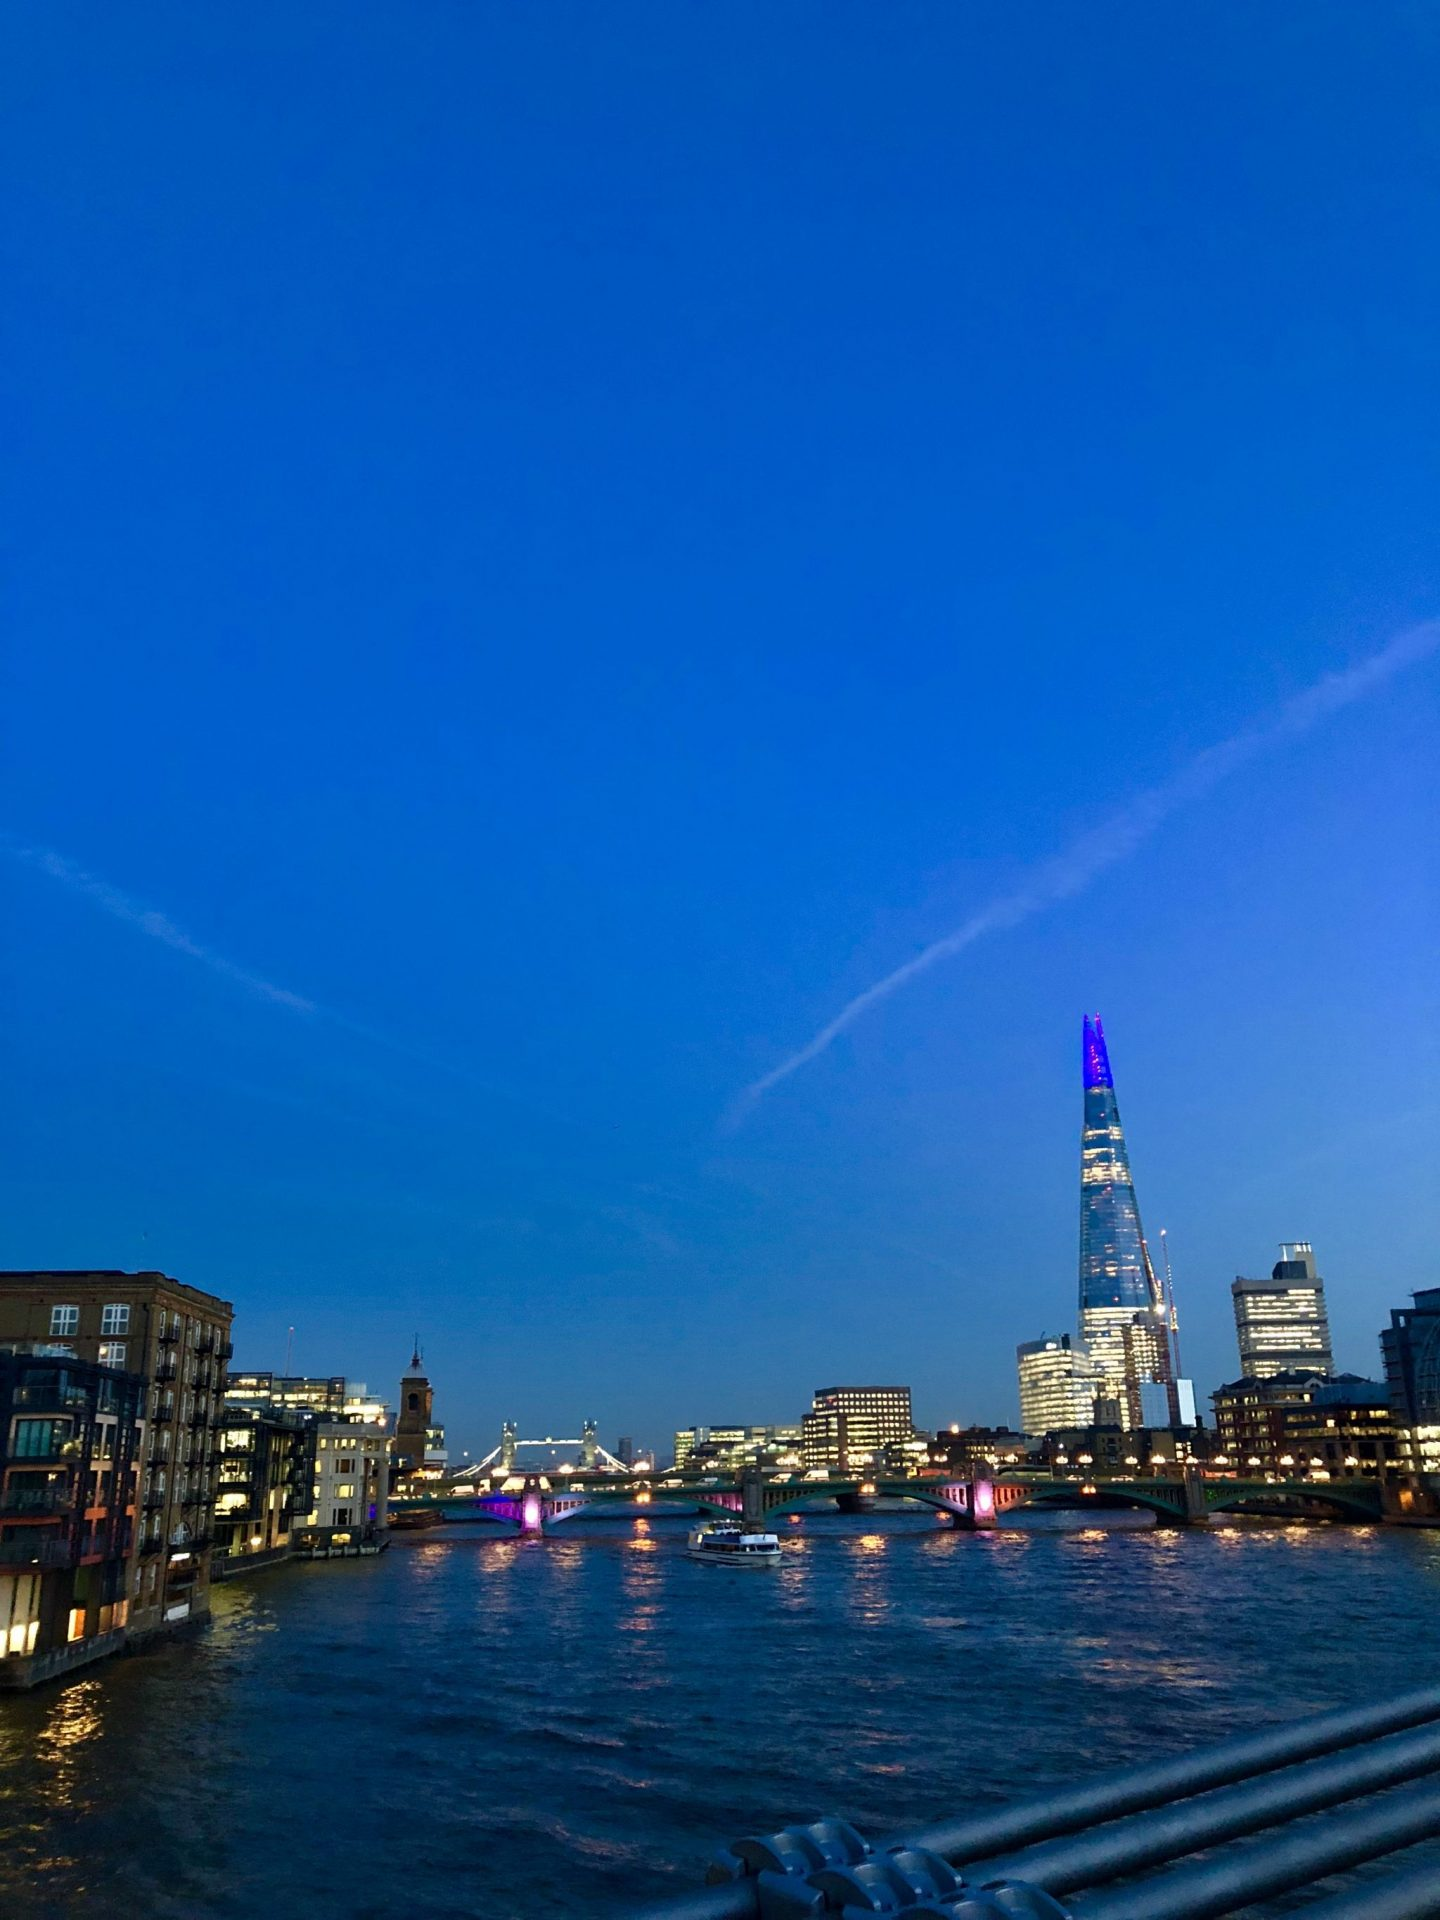 London skyline at night, including the Shard